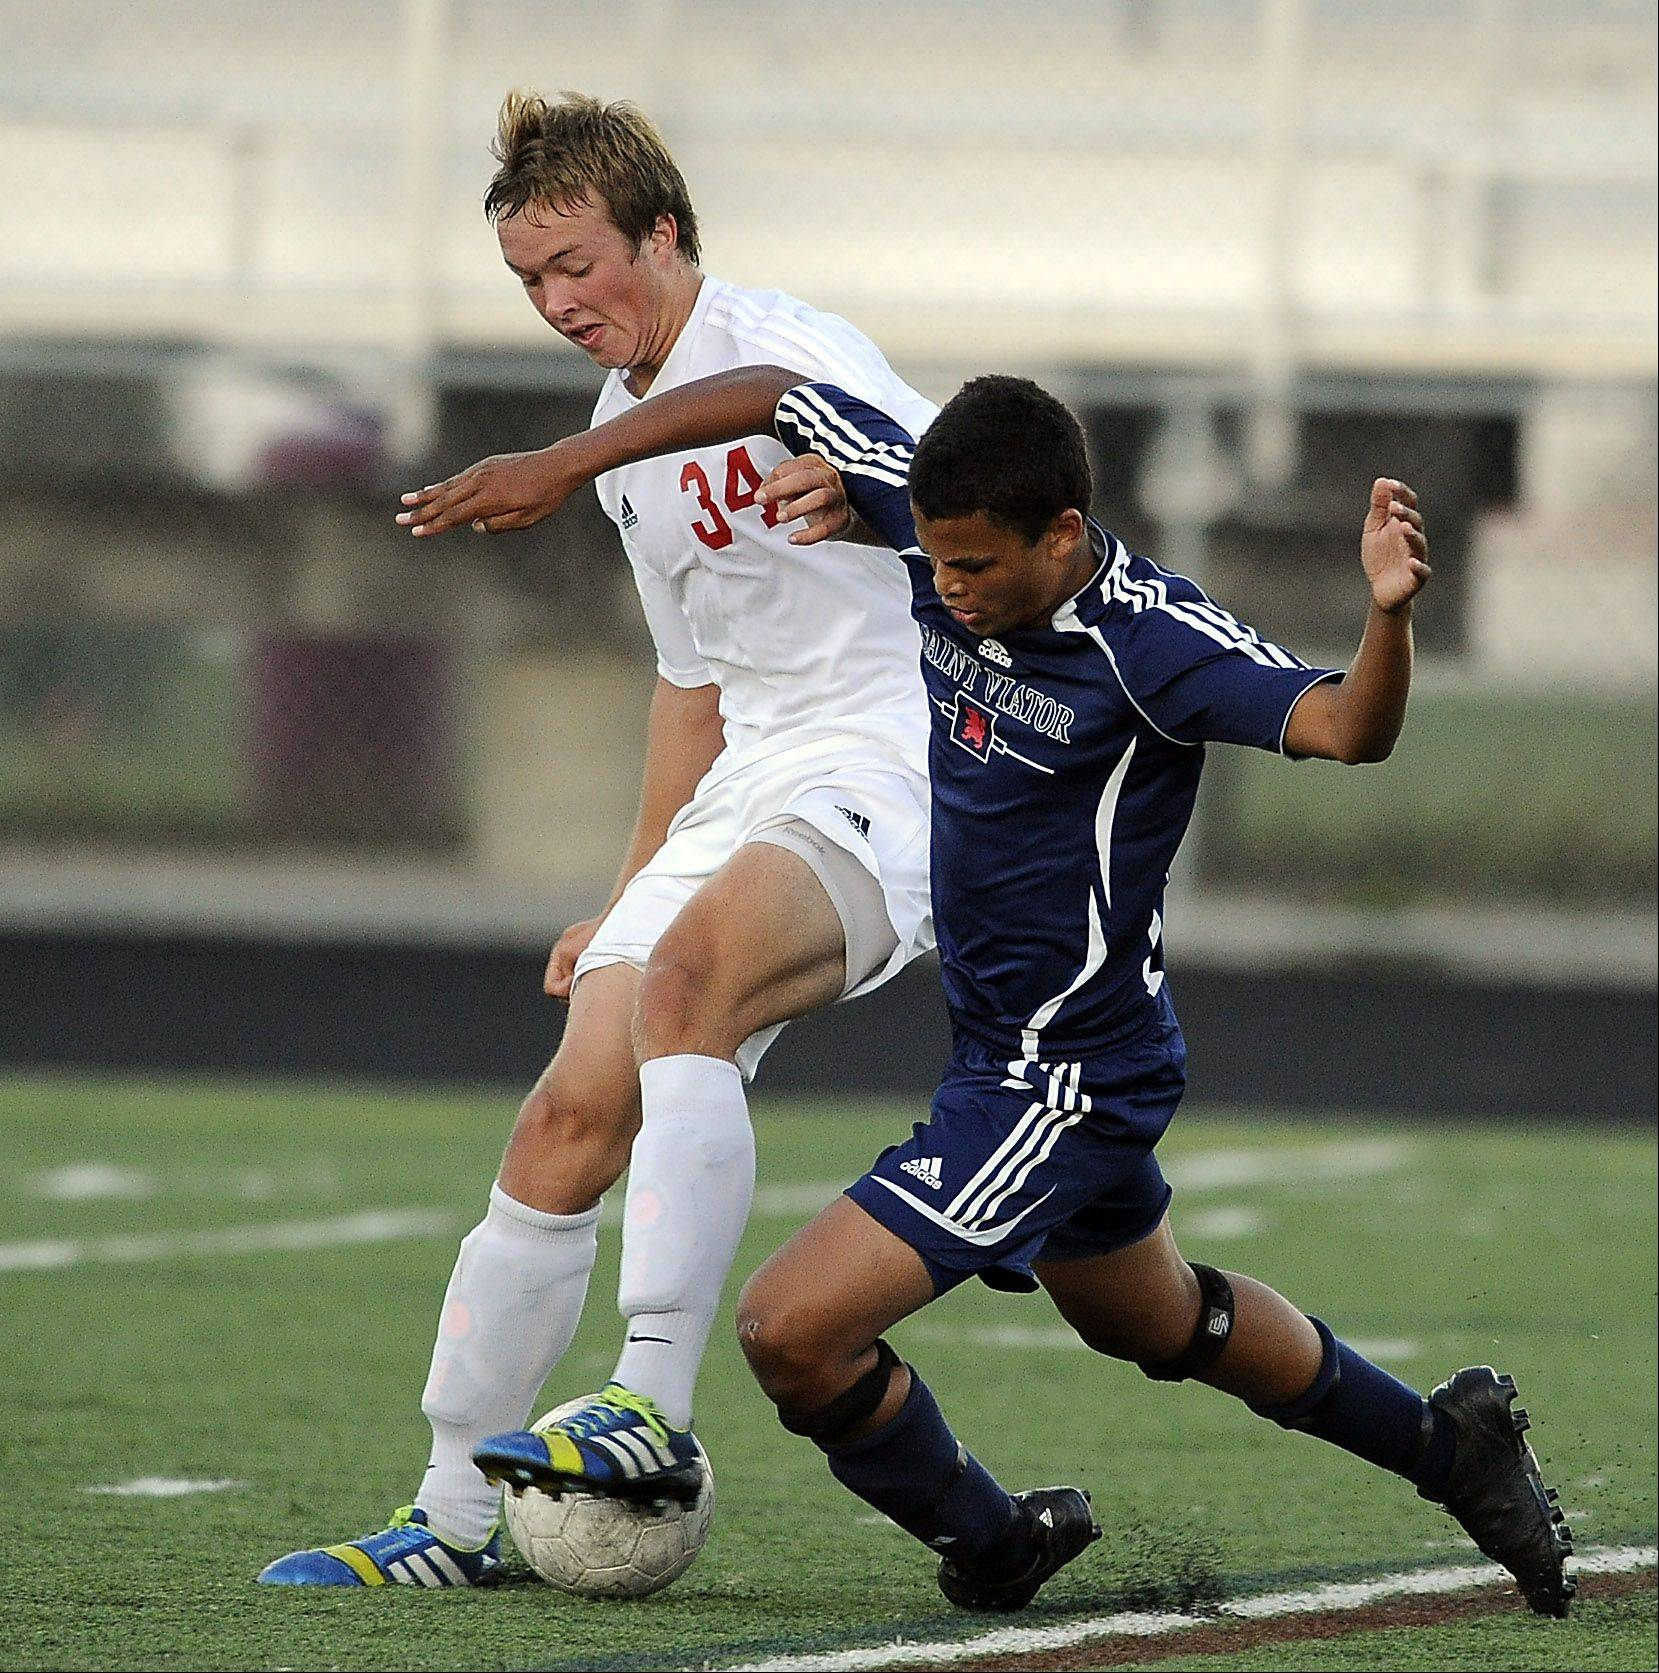 Mark Welsh/mwelsh@dailyherald.comPalatine's Gavin Falotico, left, and St. Viator's Kevin Klinkenberg battle for the ball in the first period Thursday at Palatine.